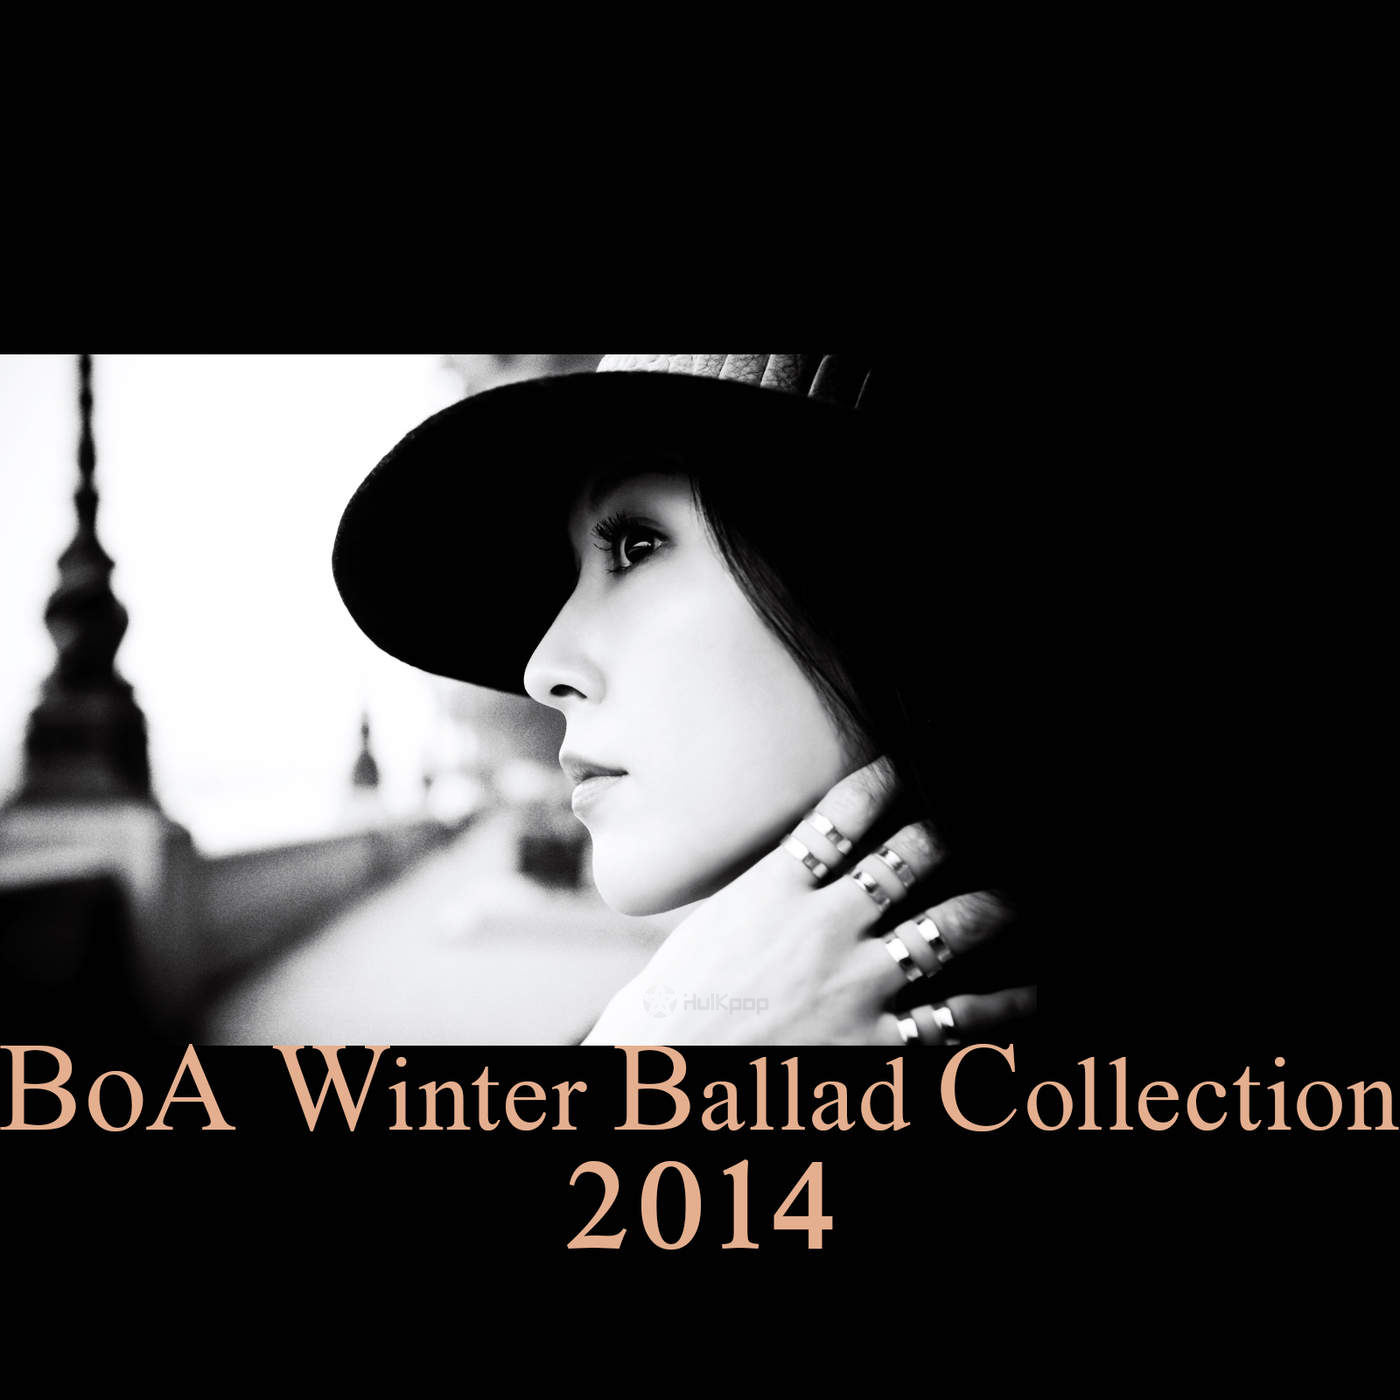 BoA – Winter Ballad Collection 2014 (Japanese)